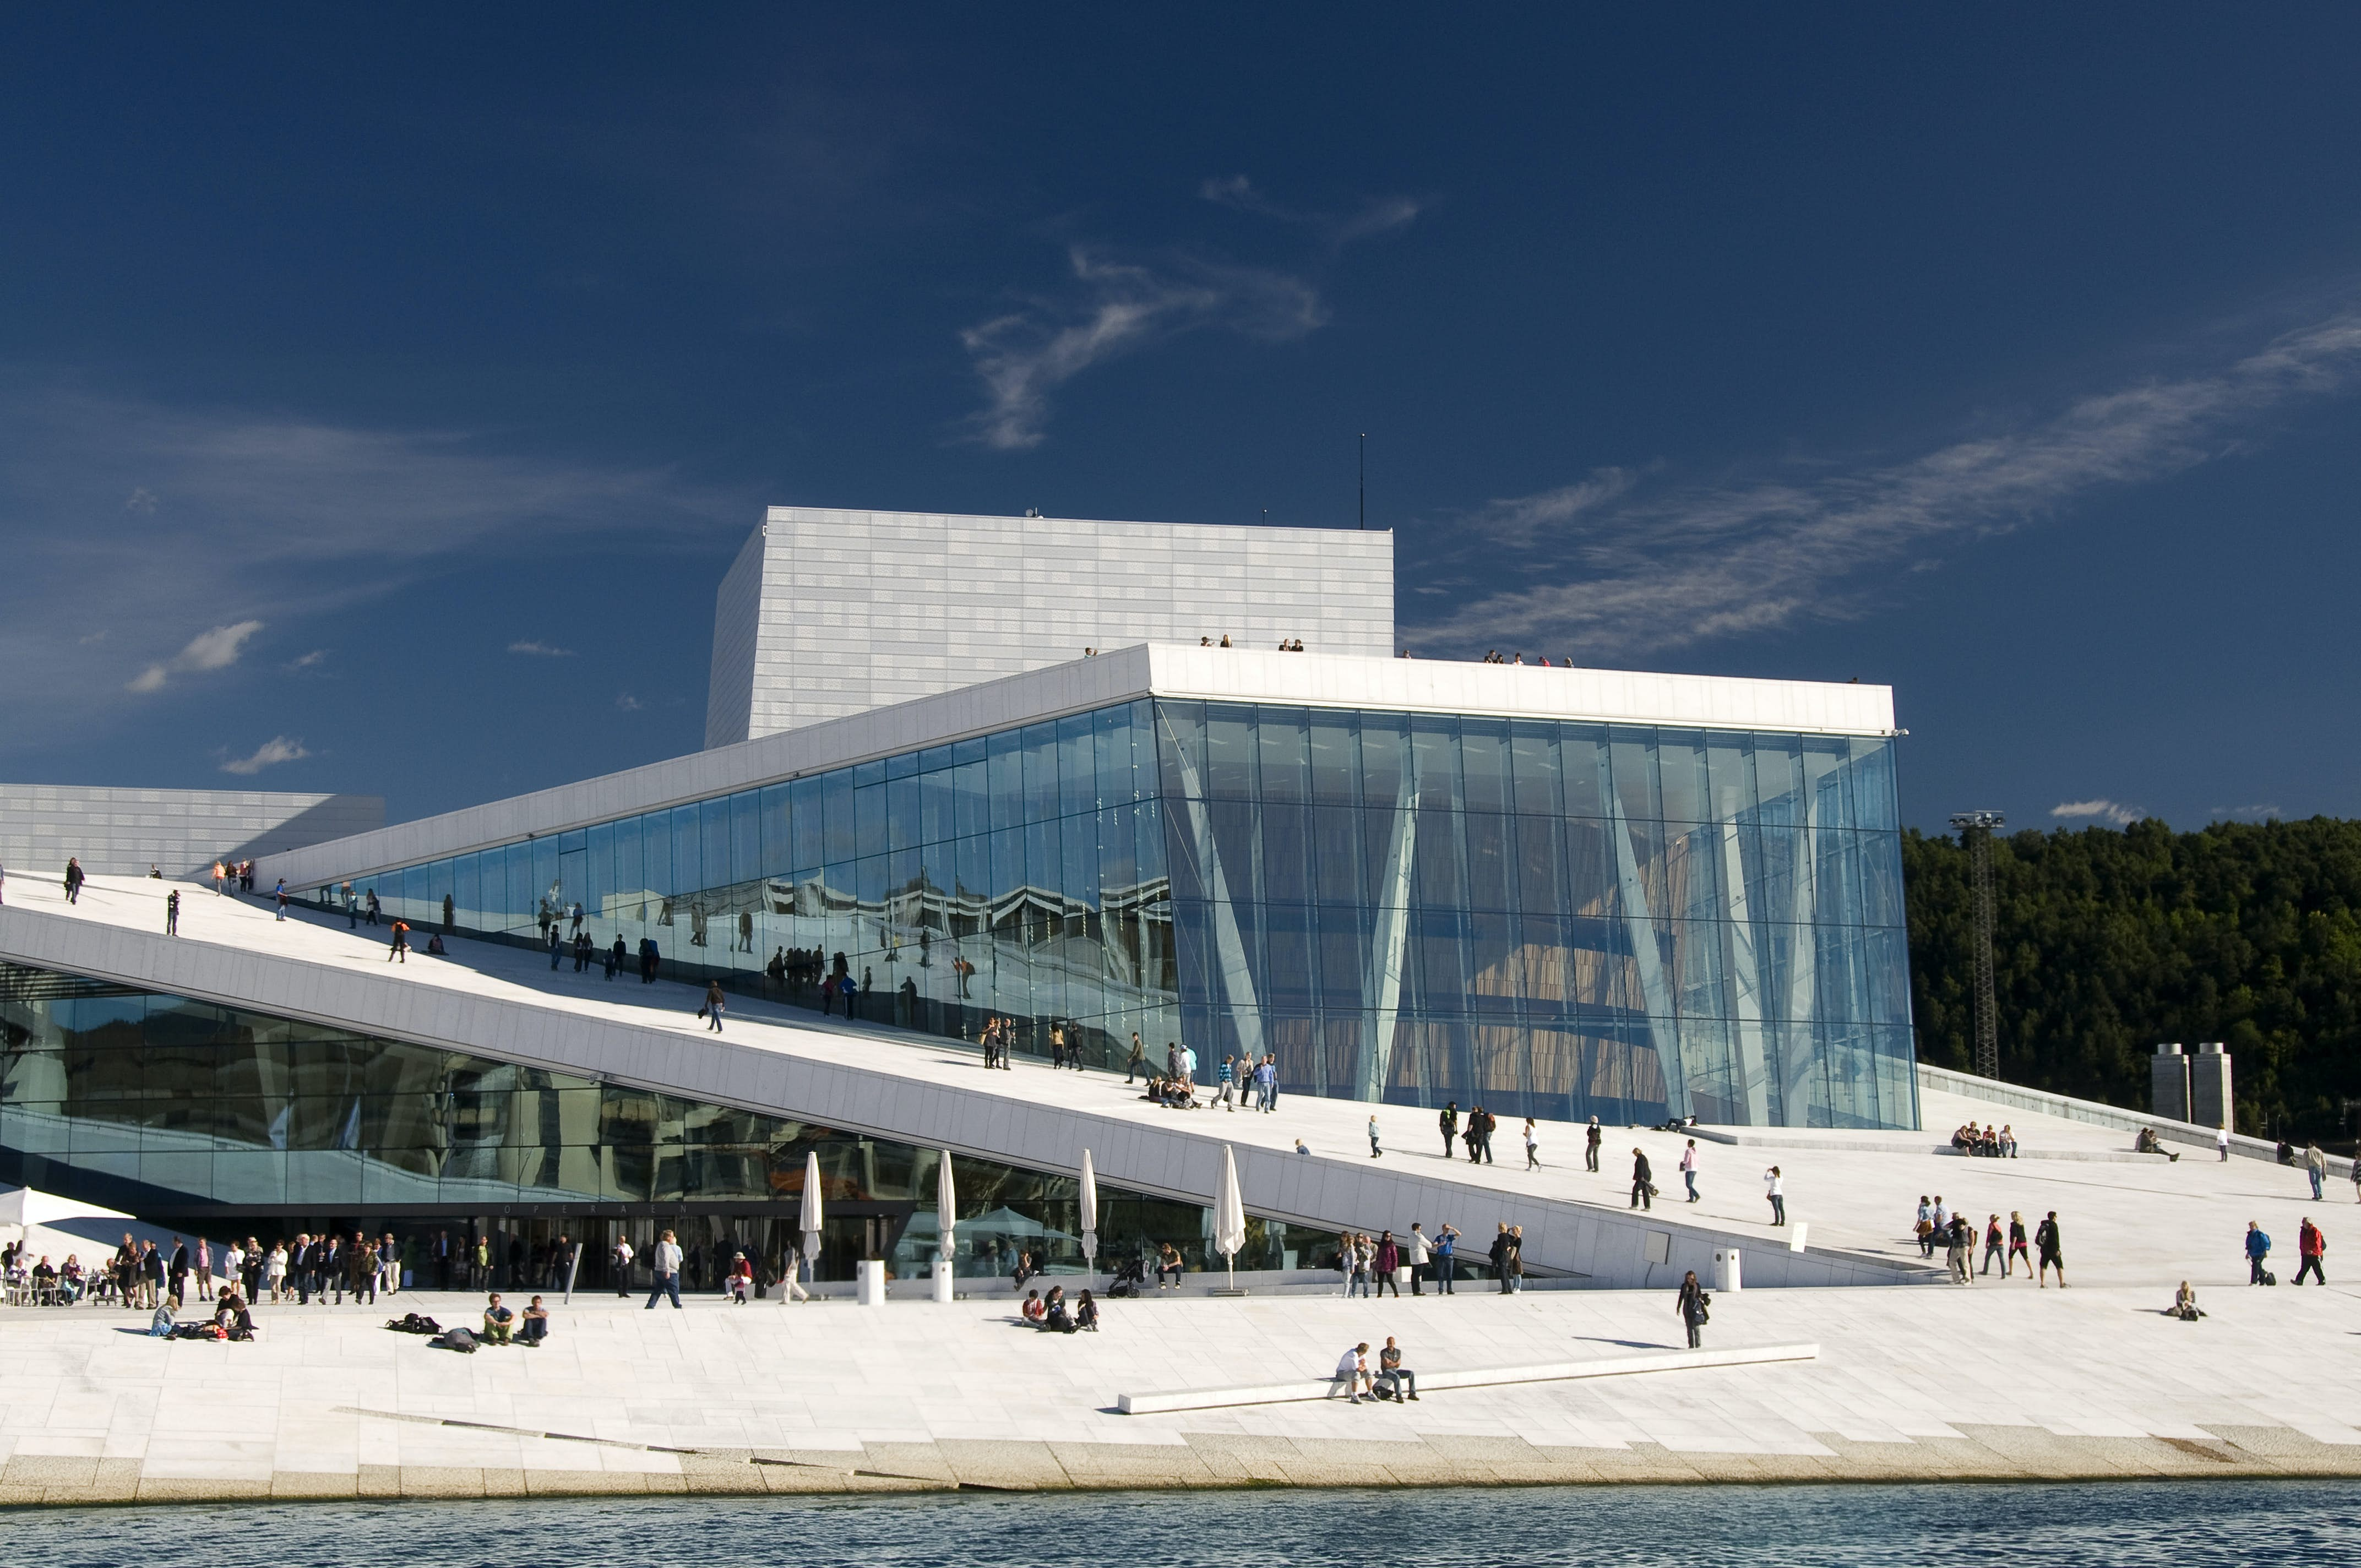 Oslo Opera House | Oslo, Norway Attractions - Lonely Planet